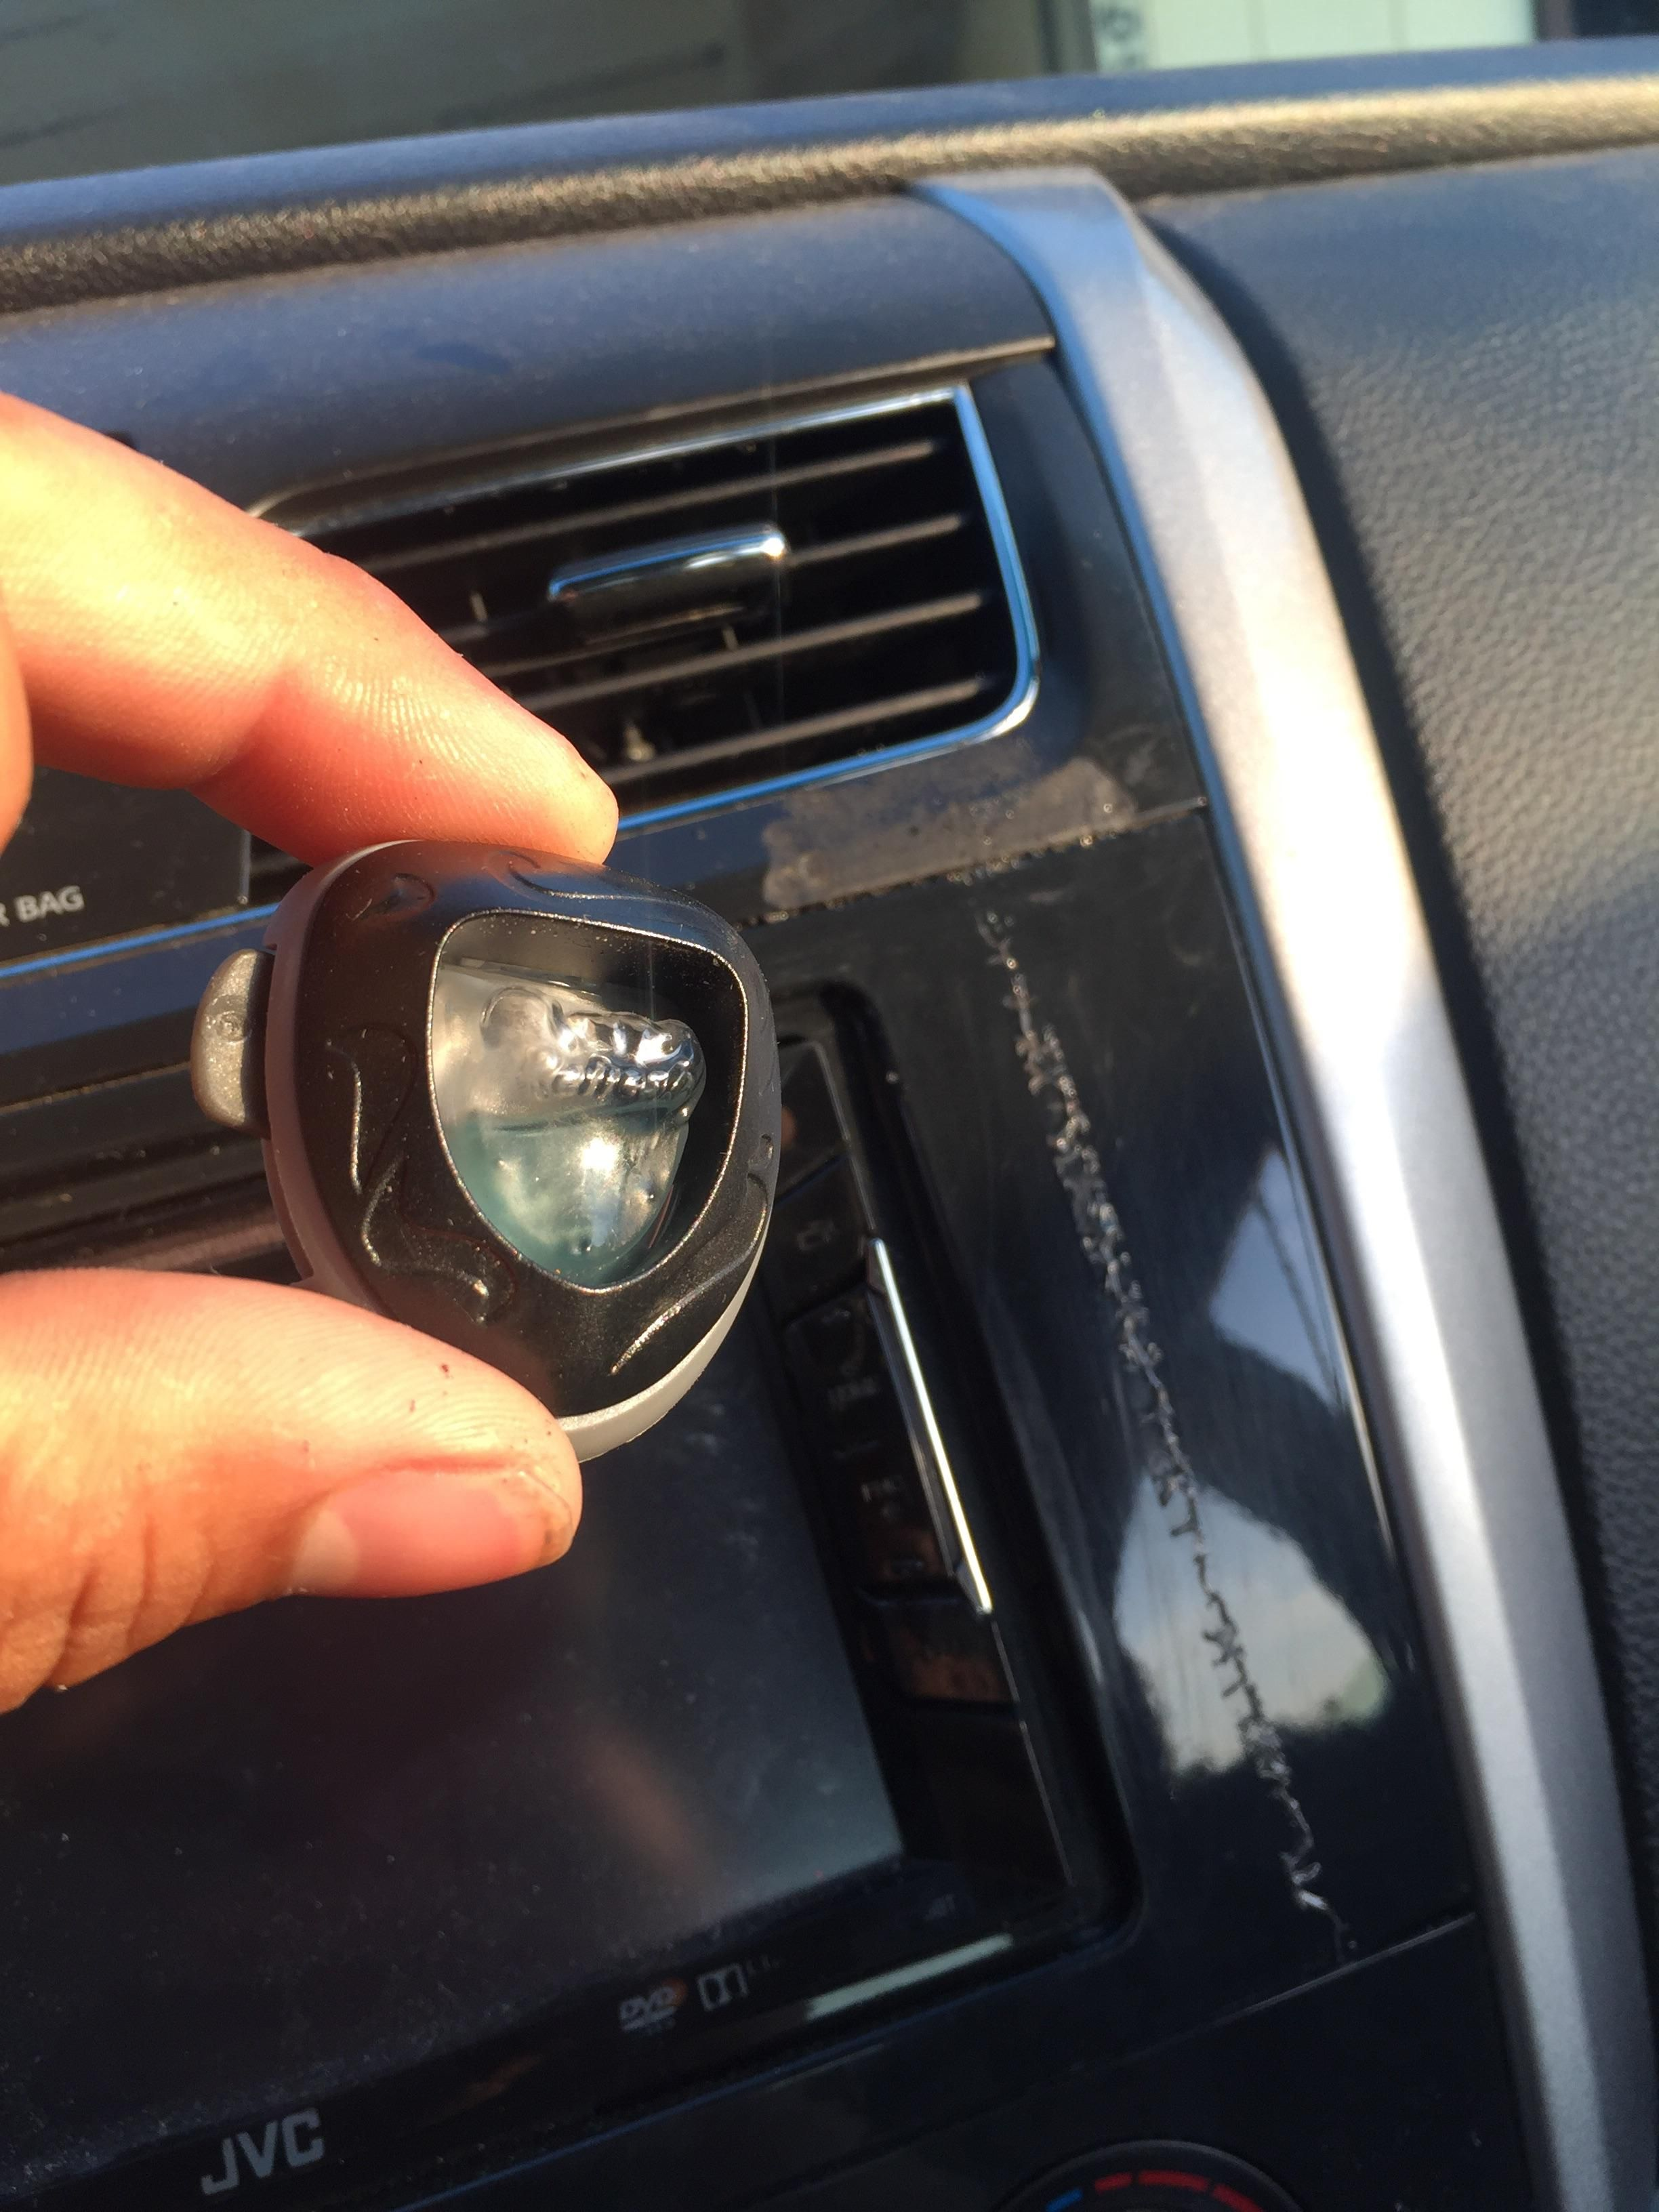 Careful with your head units in this heat. Air freshener